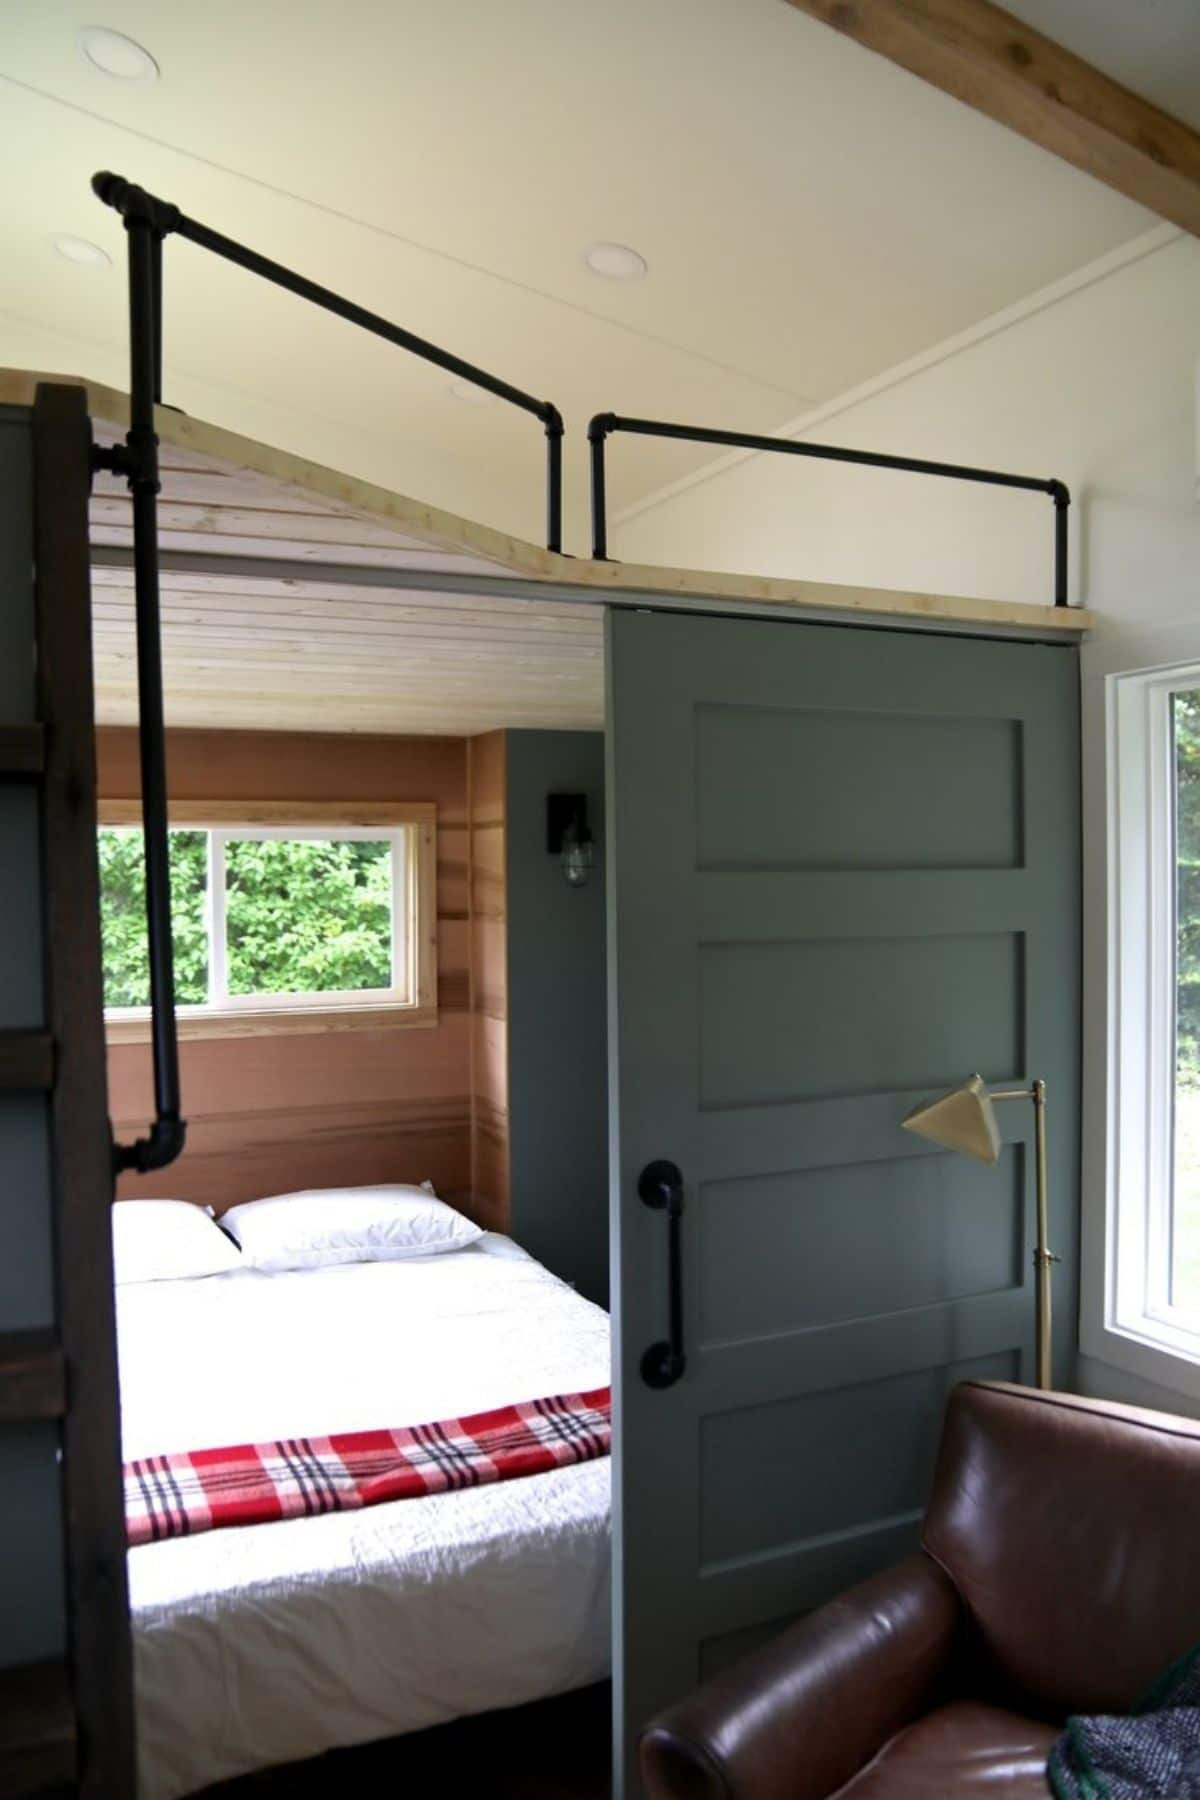 olive green barn door open under loft to show bed with plaid blanket at end